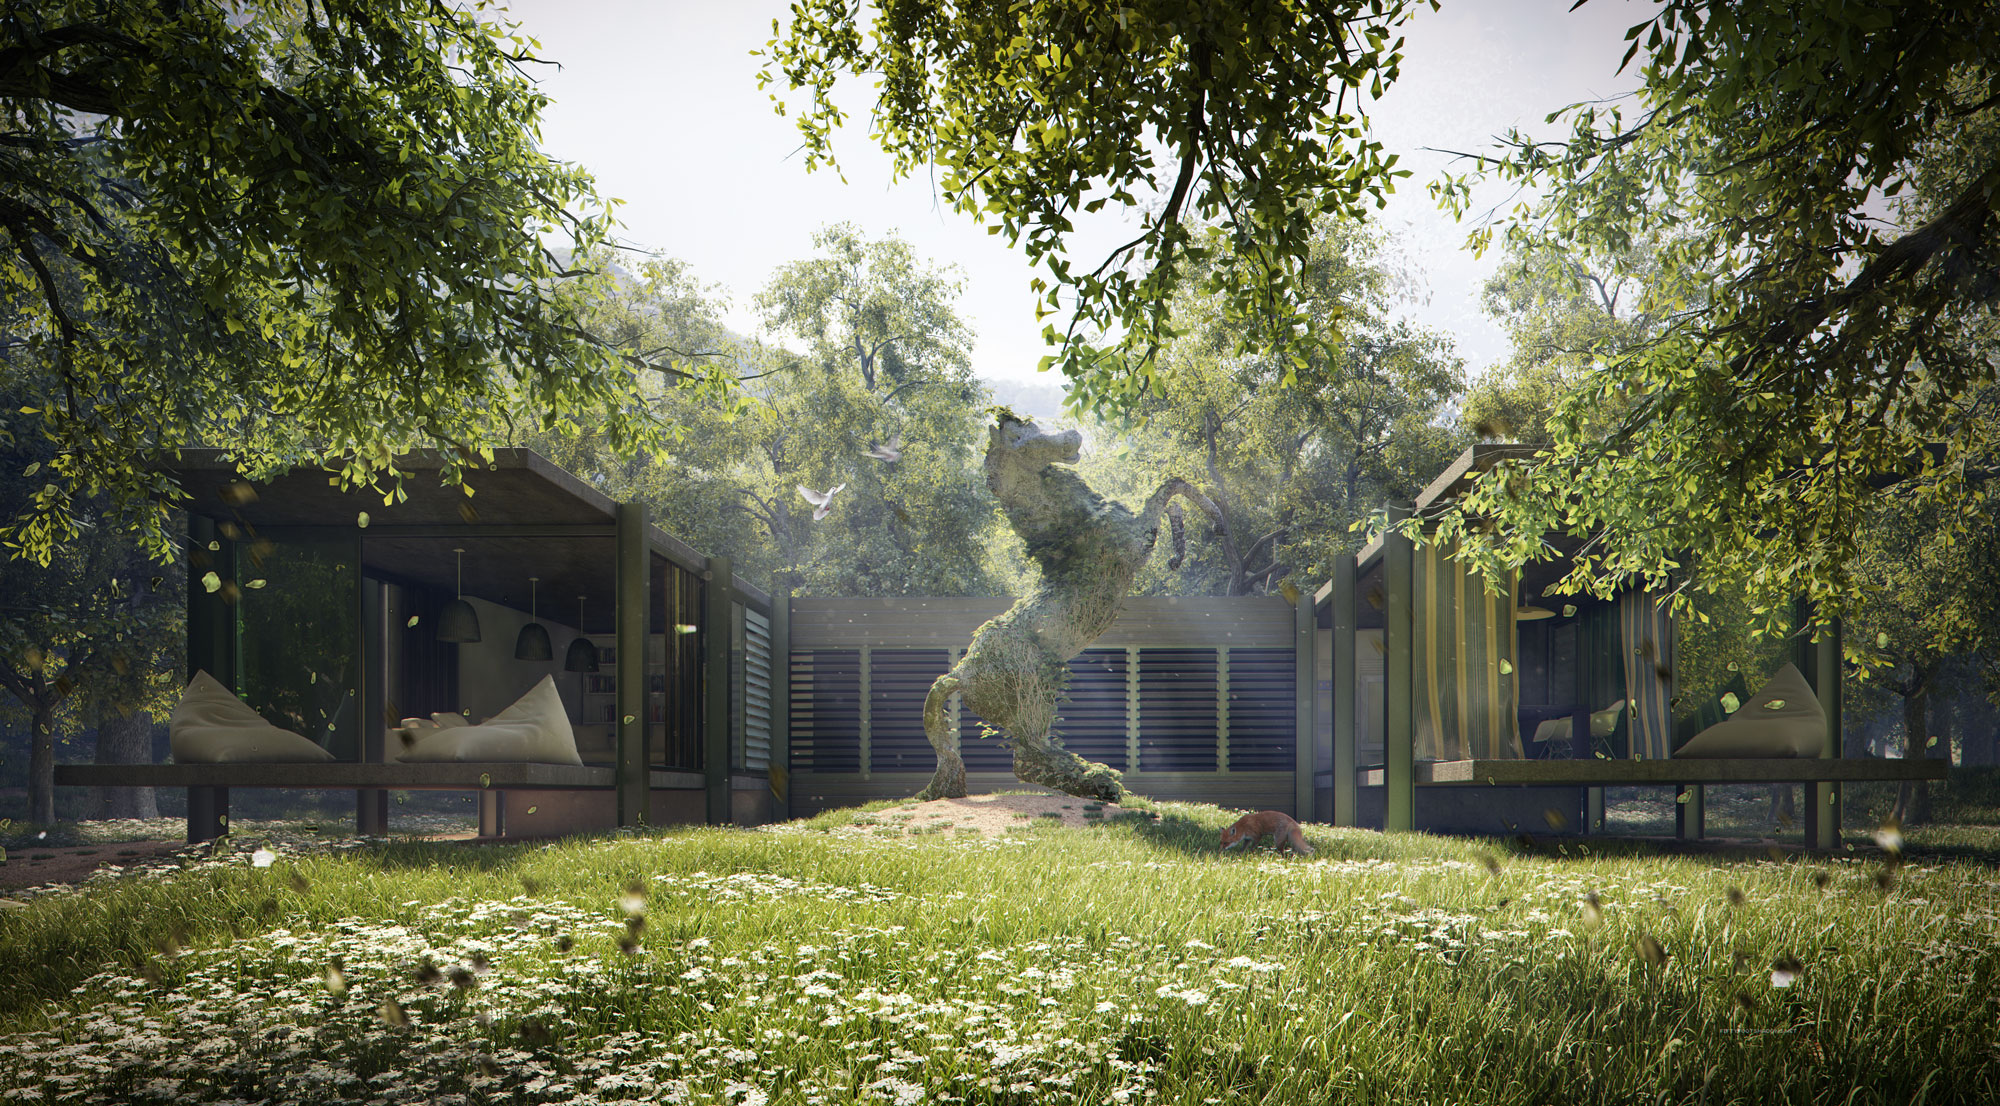 3d Render Valkyrian House Architectural Visualization